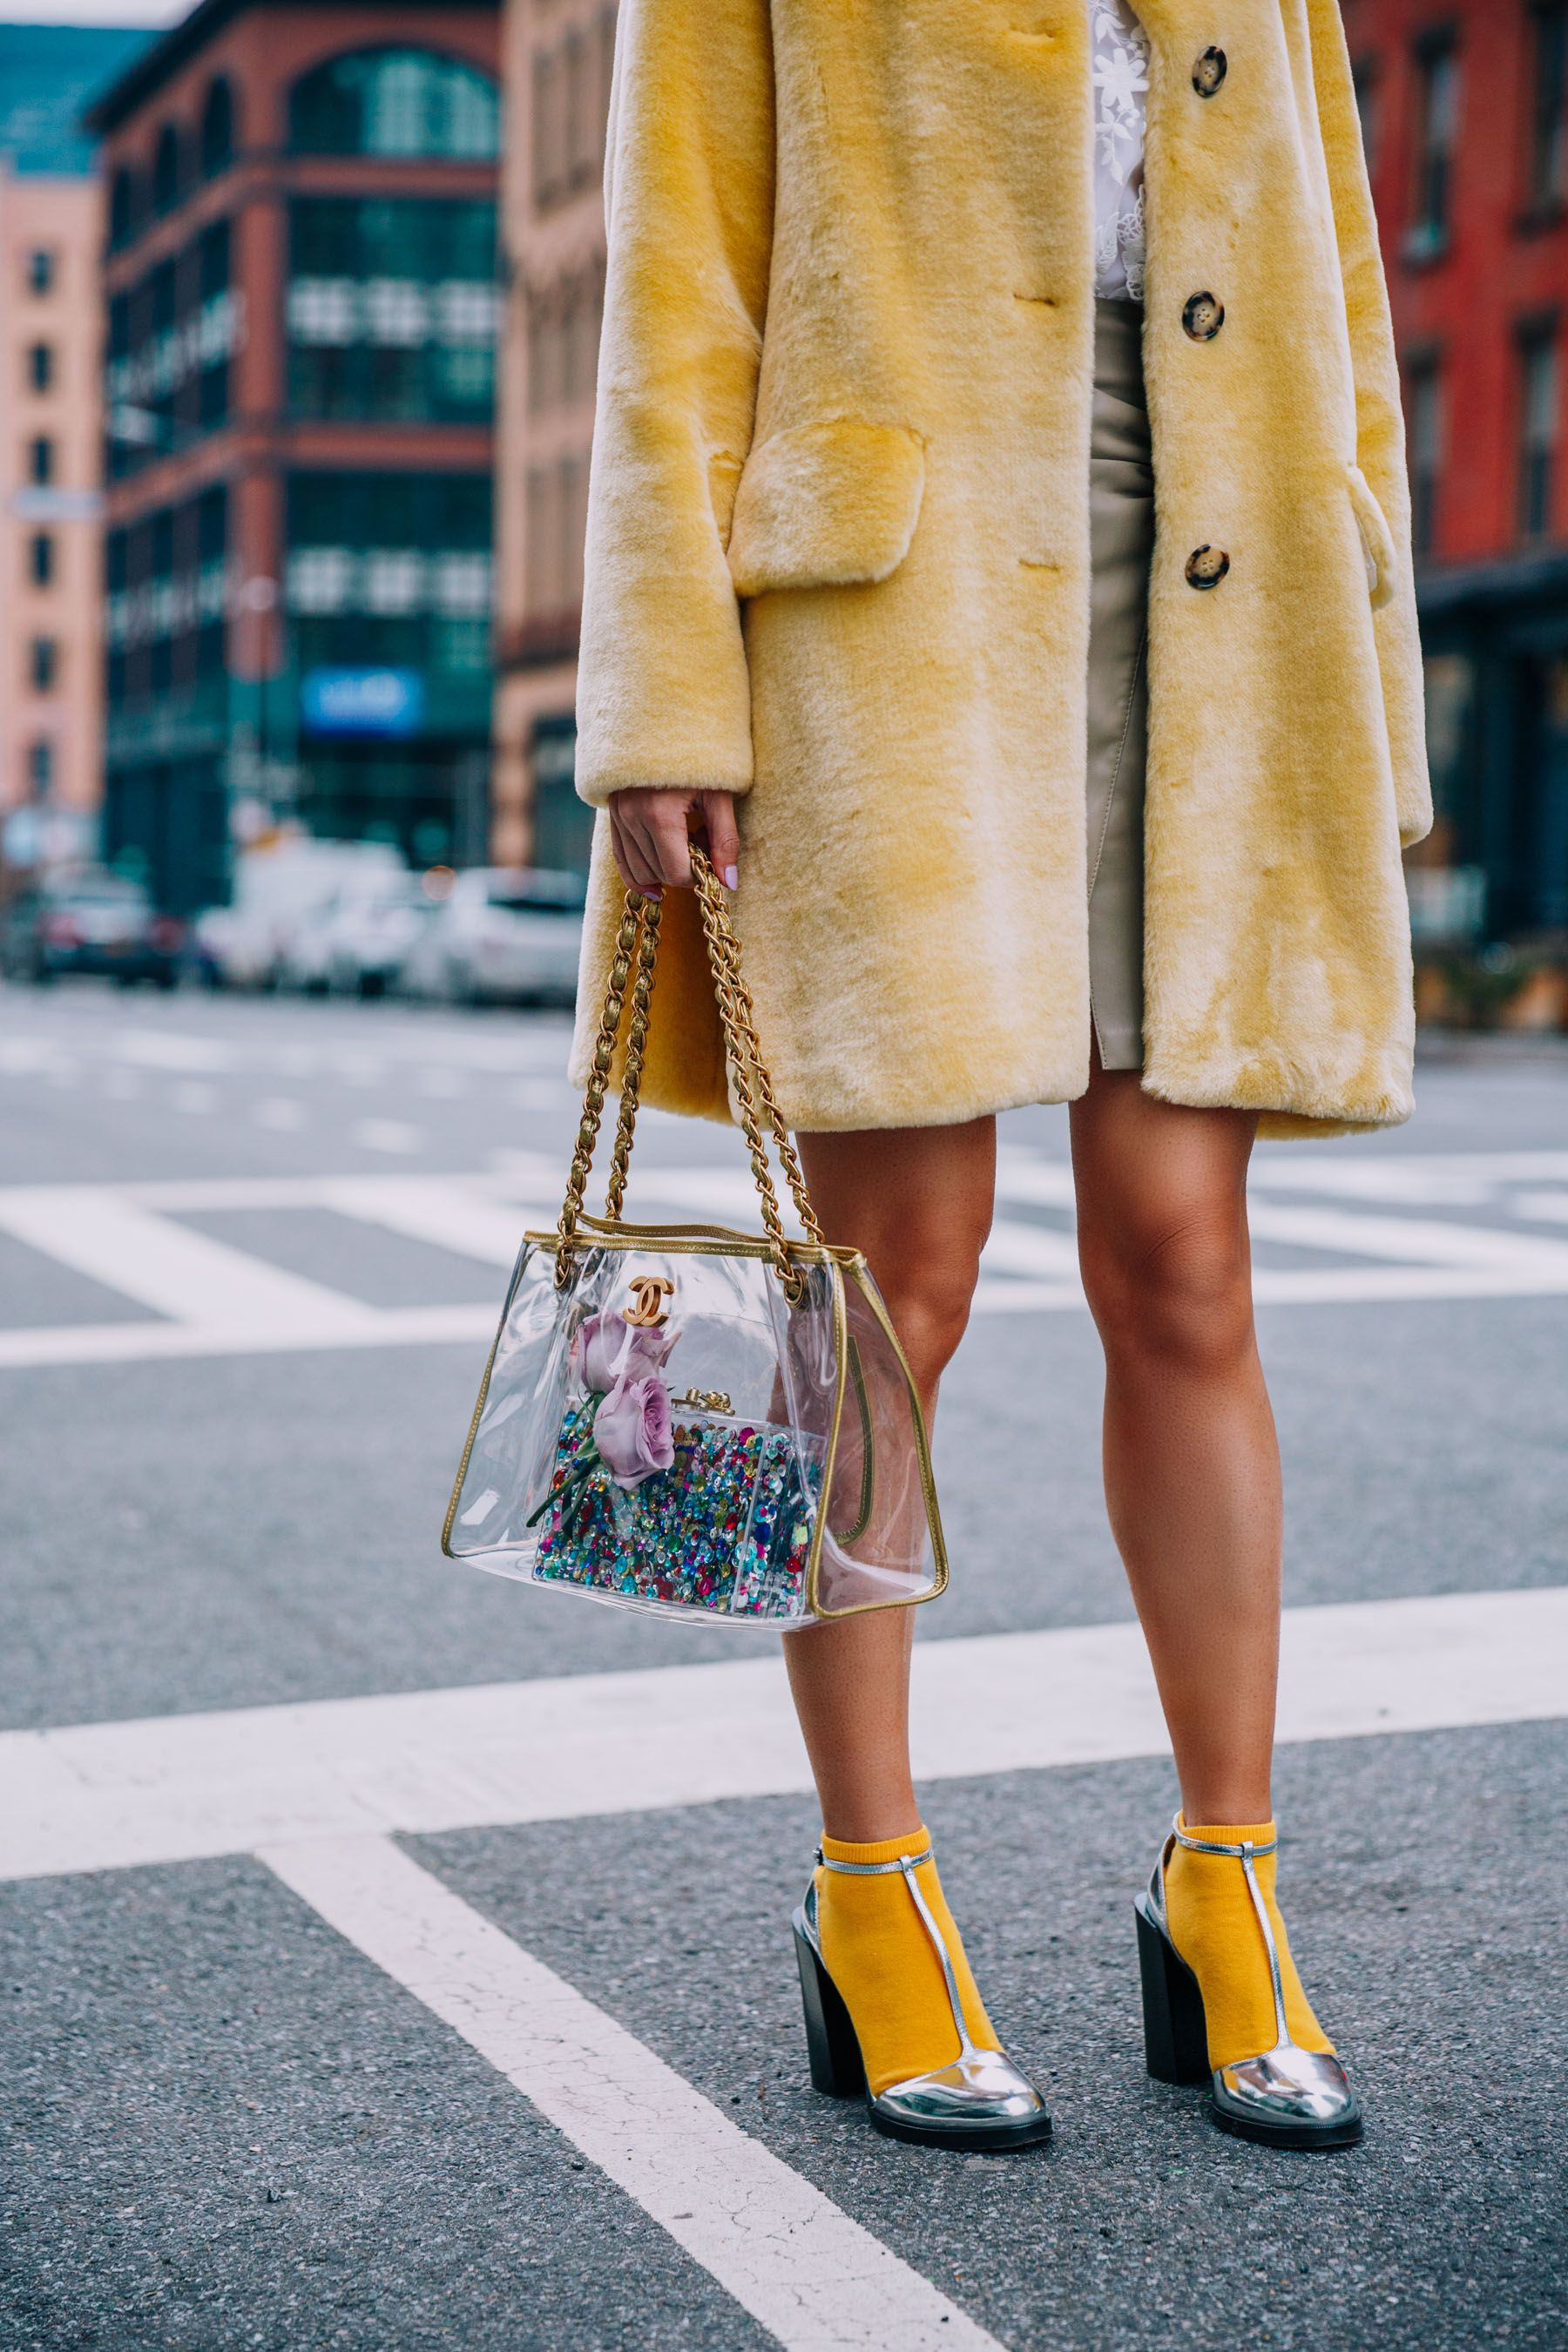 027703175e27 NYFW 2018 Street Style - Shrimps Yellow Fur Coat